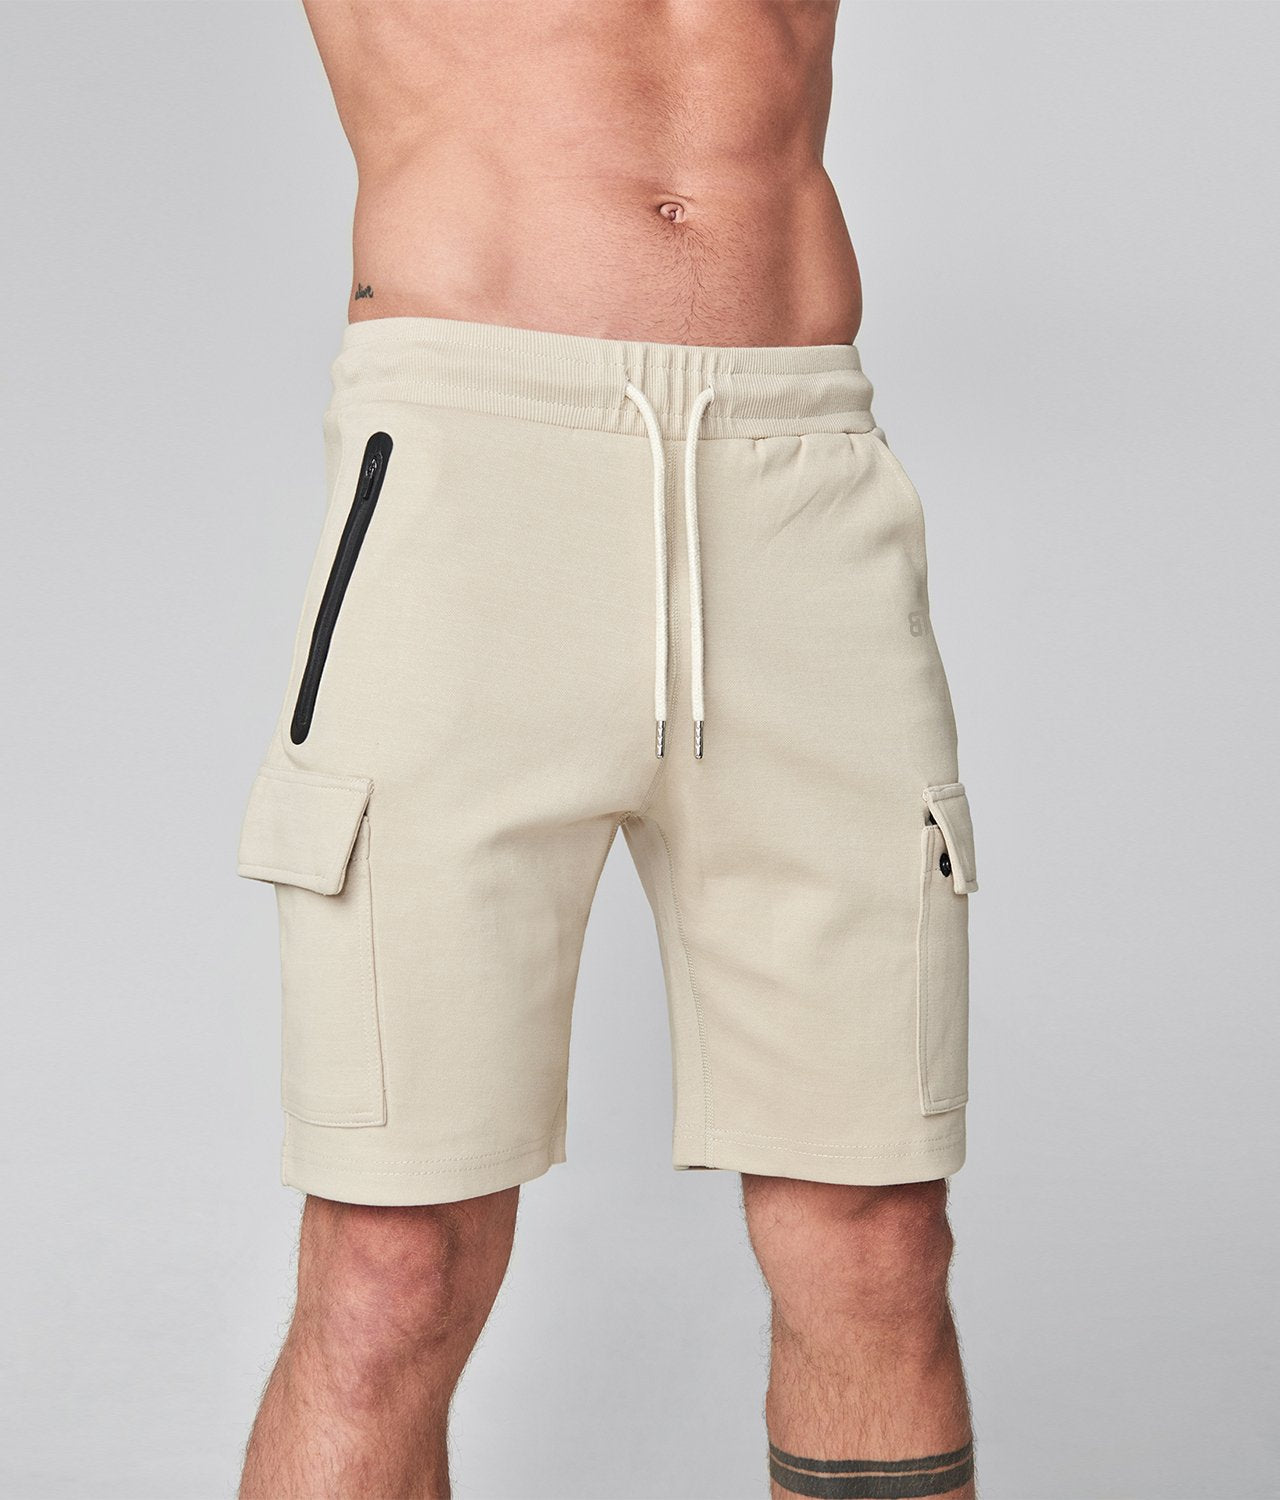 Born Tough United Kingdom Zippered Stone Comfortable Gym Workout Cargo Shorts for Men